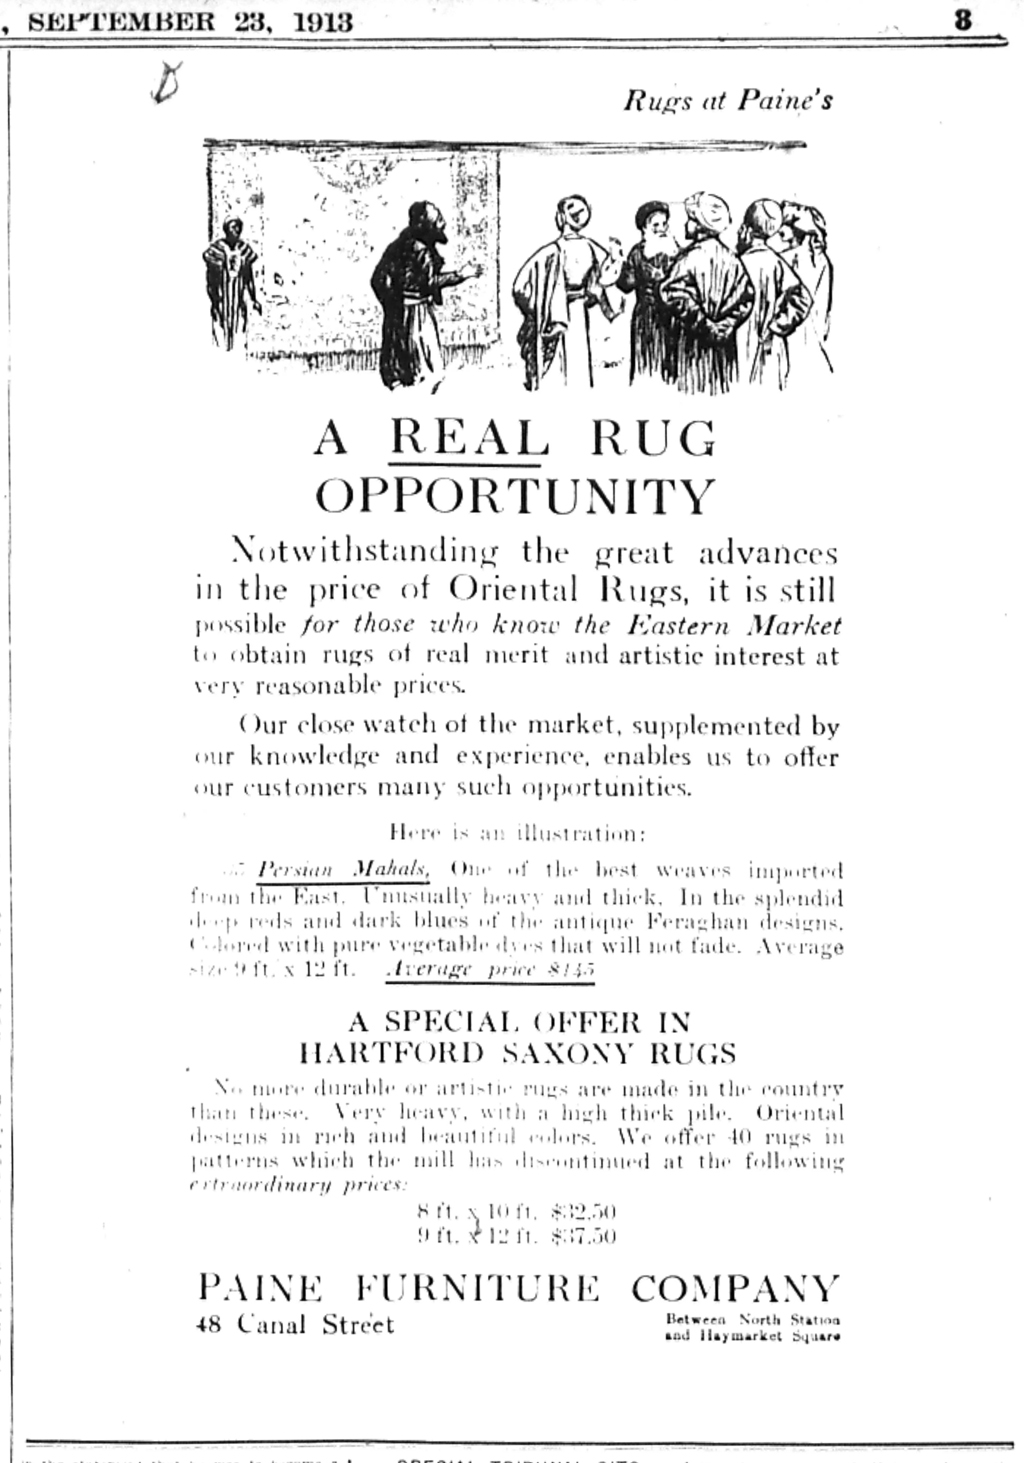 A Real Rug Opportunity. Advertisement for Paine Furniture Company, The Boston Evening Transcript, 23 September 1913. Illustration by W.A. Dwiggins.